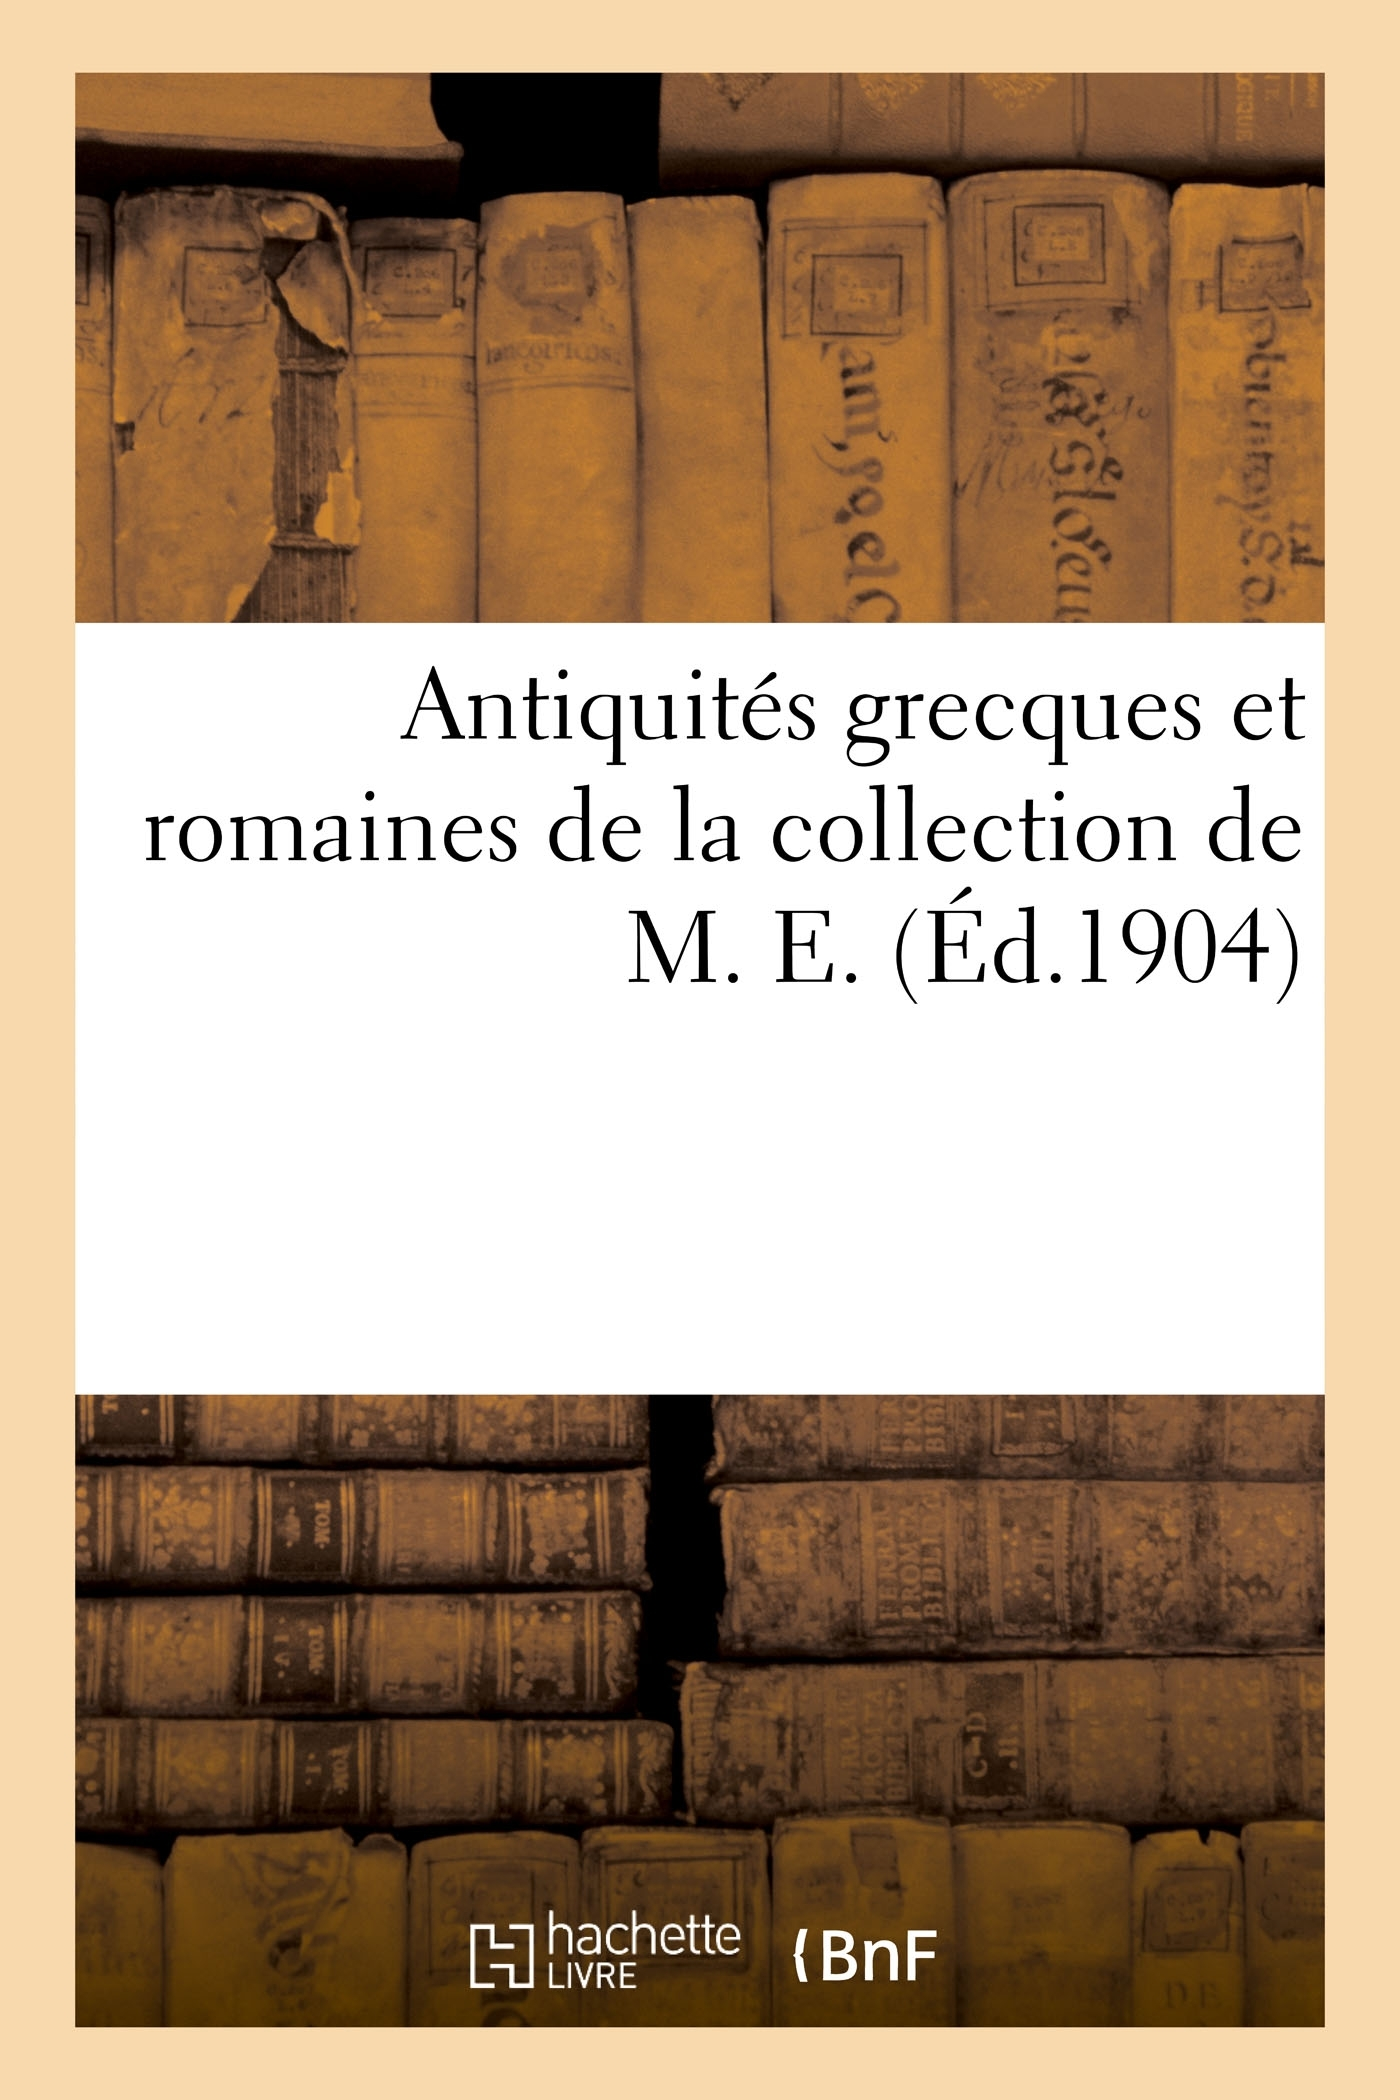 ANTIQUITES GRECQUES ET ROMAINES DE LA COLLECTION DE M. E.